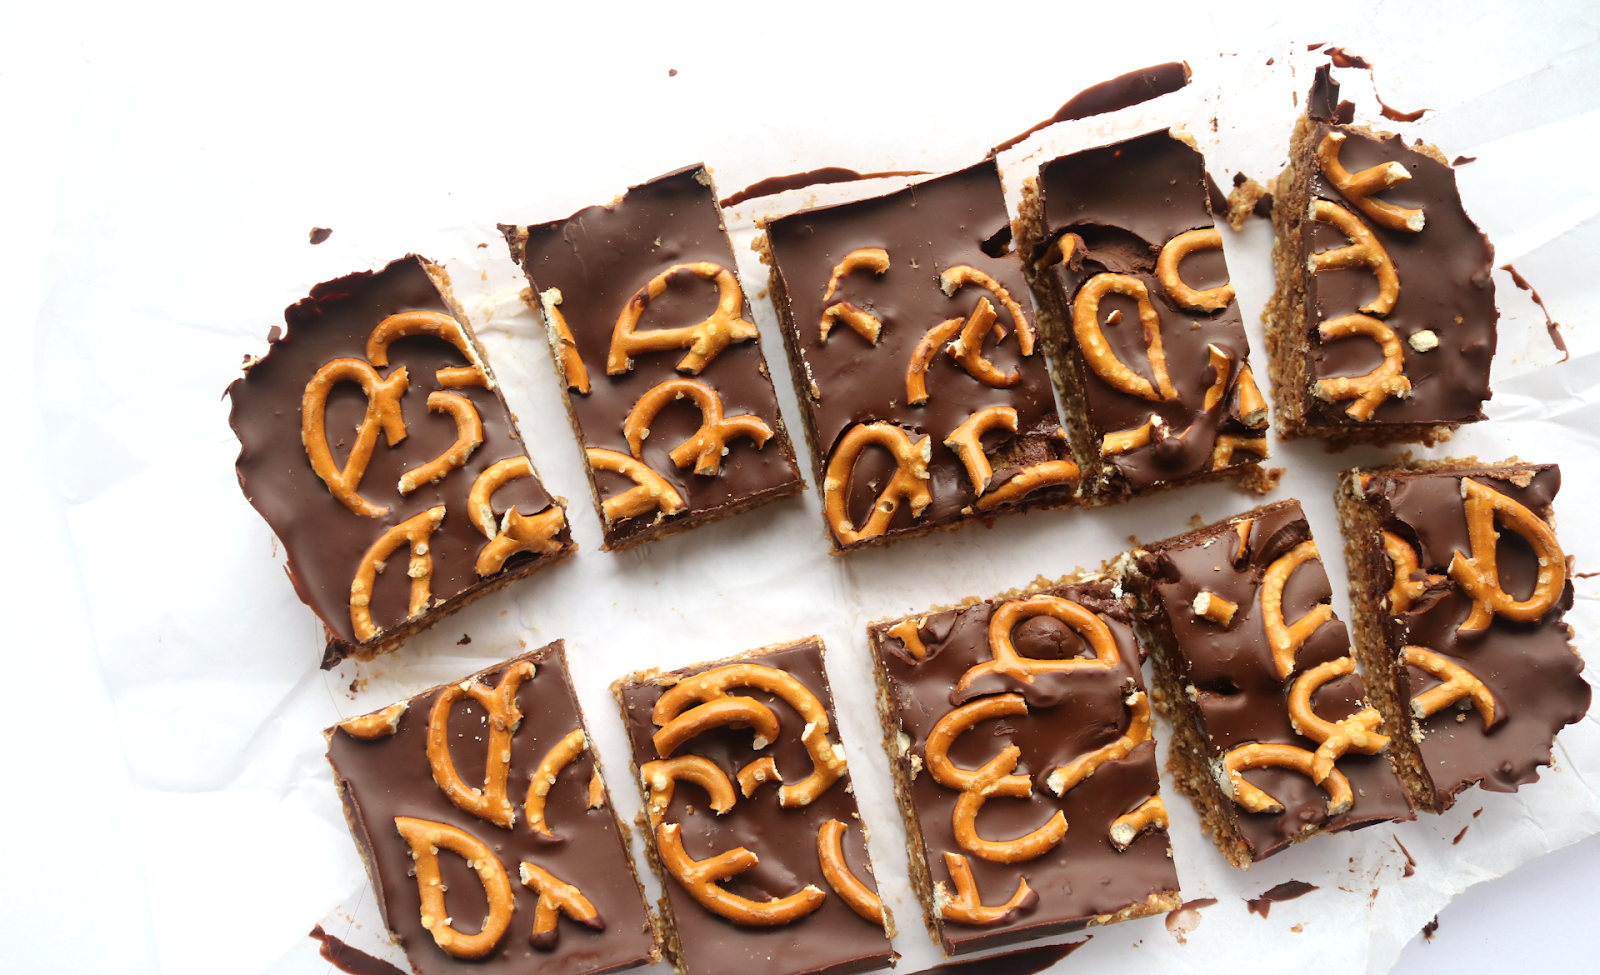 Salted Chocolate Pretzel & Peanut Butter Squares (Vegan / Dairy-Free recipe)